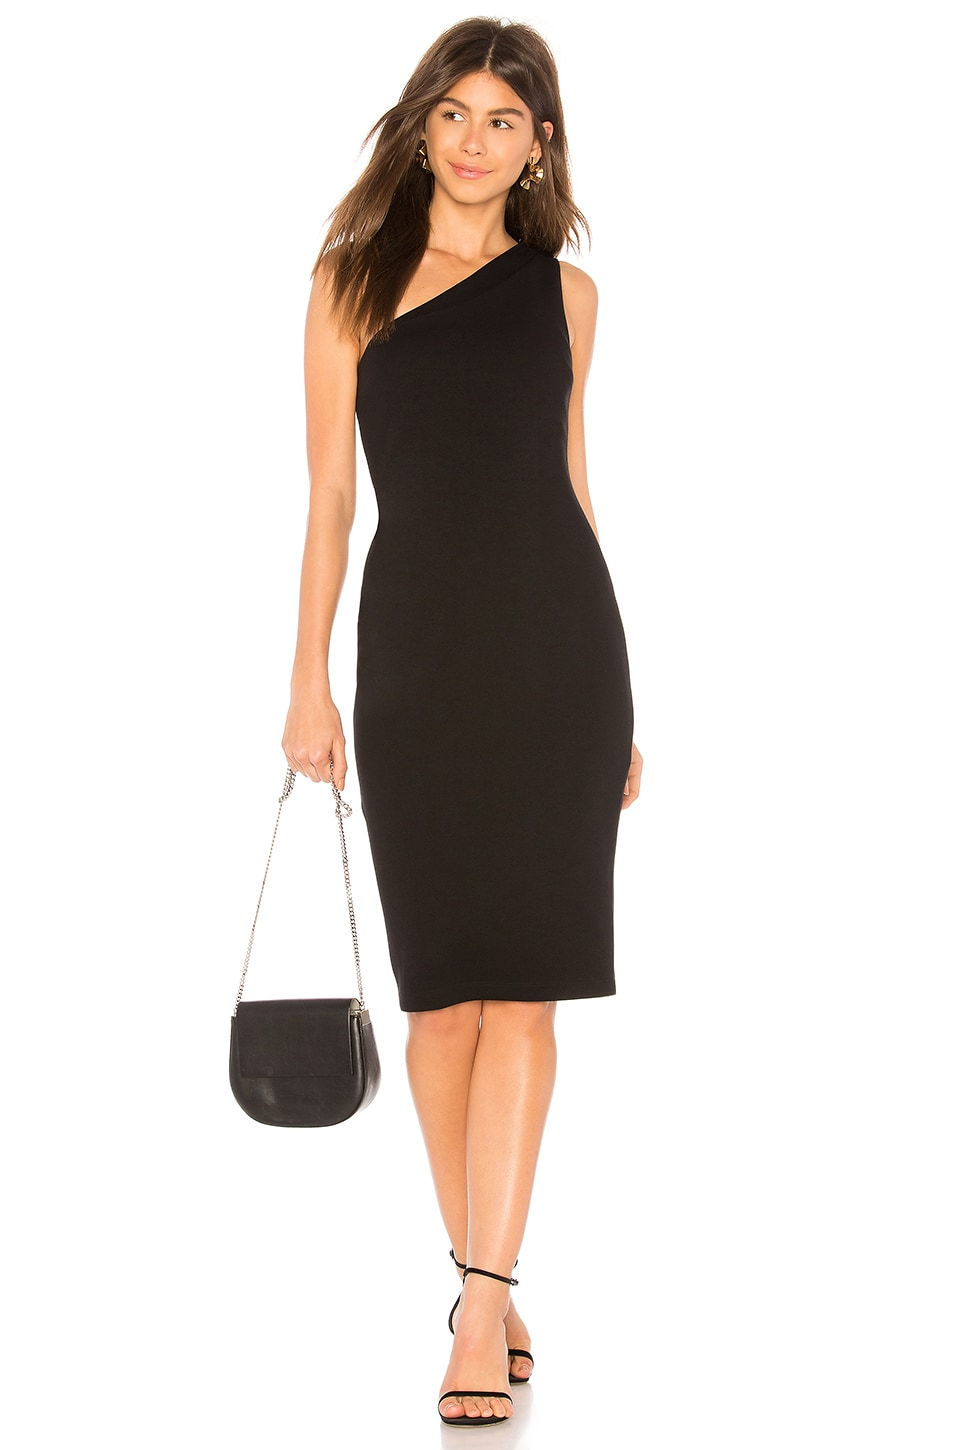 Bailey 44 Sidewinder Dress in Black